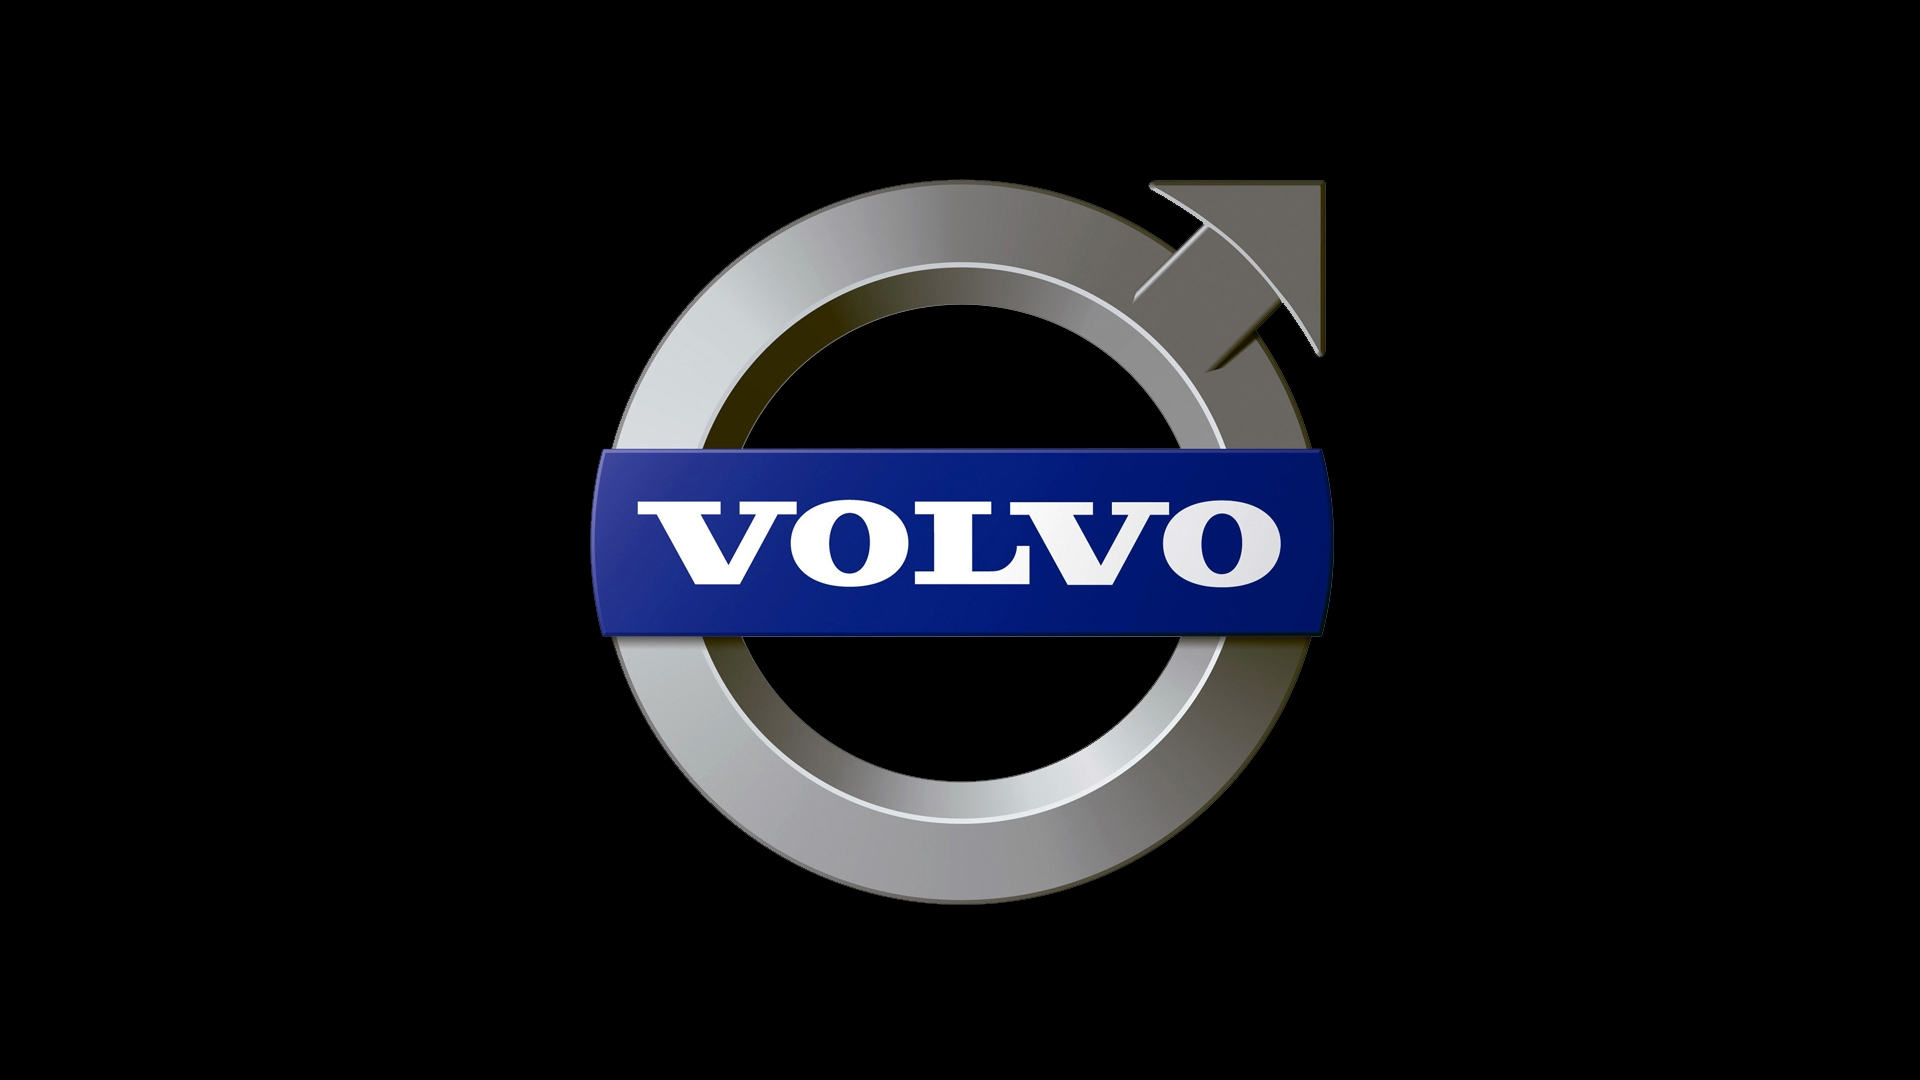 Volvo Logo, Volvo Car Symbol Meaning and History | Car ...